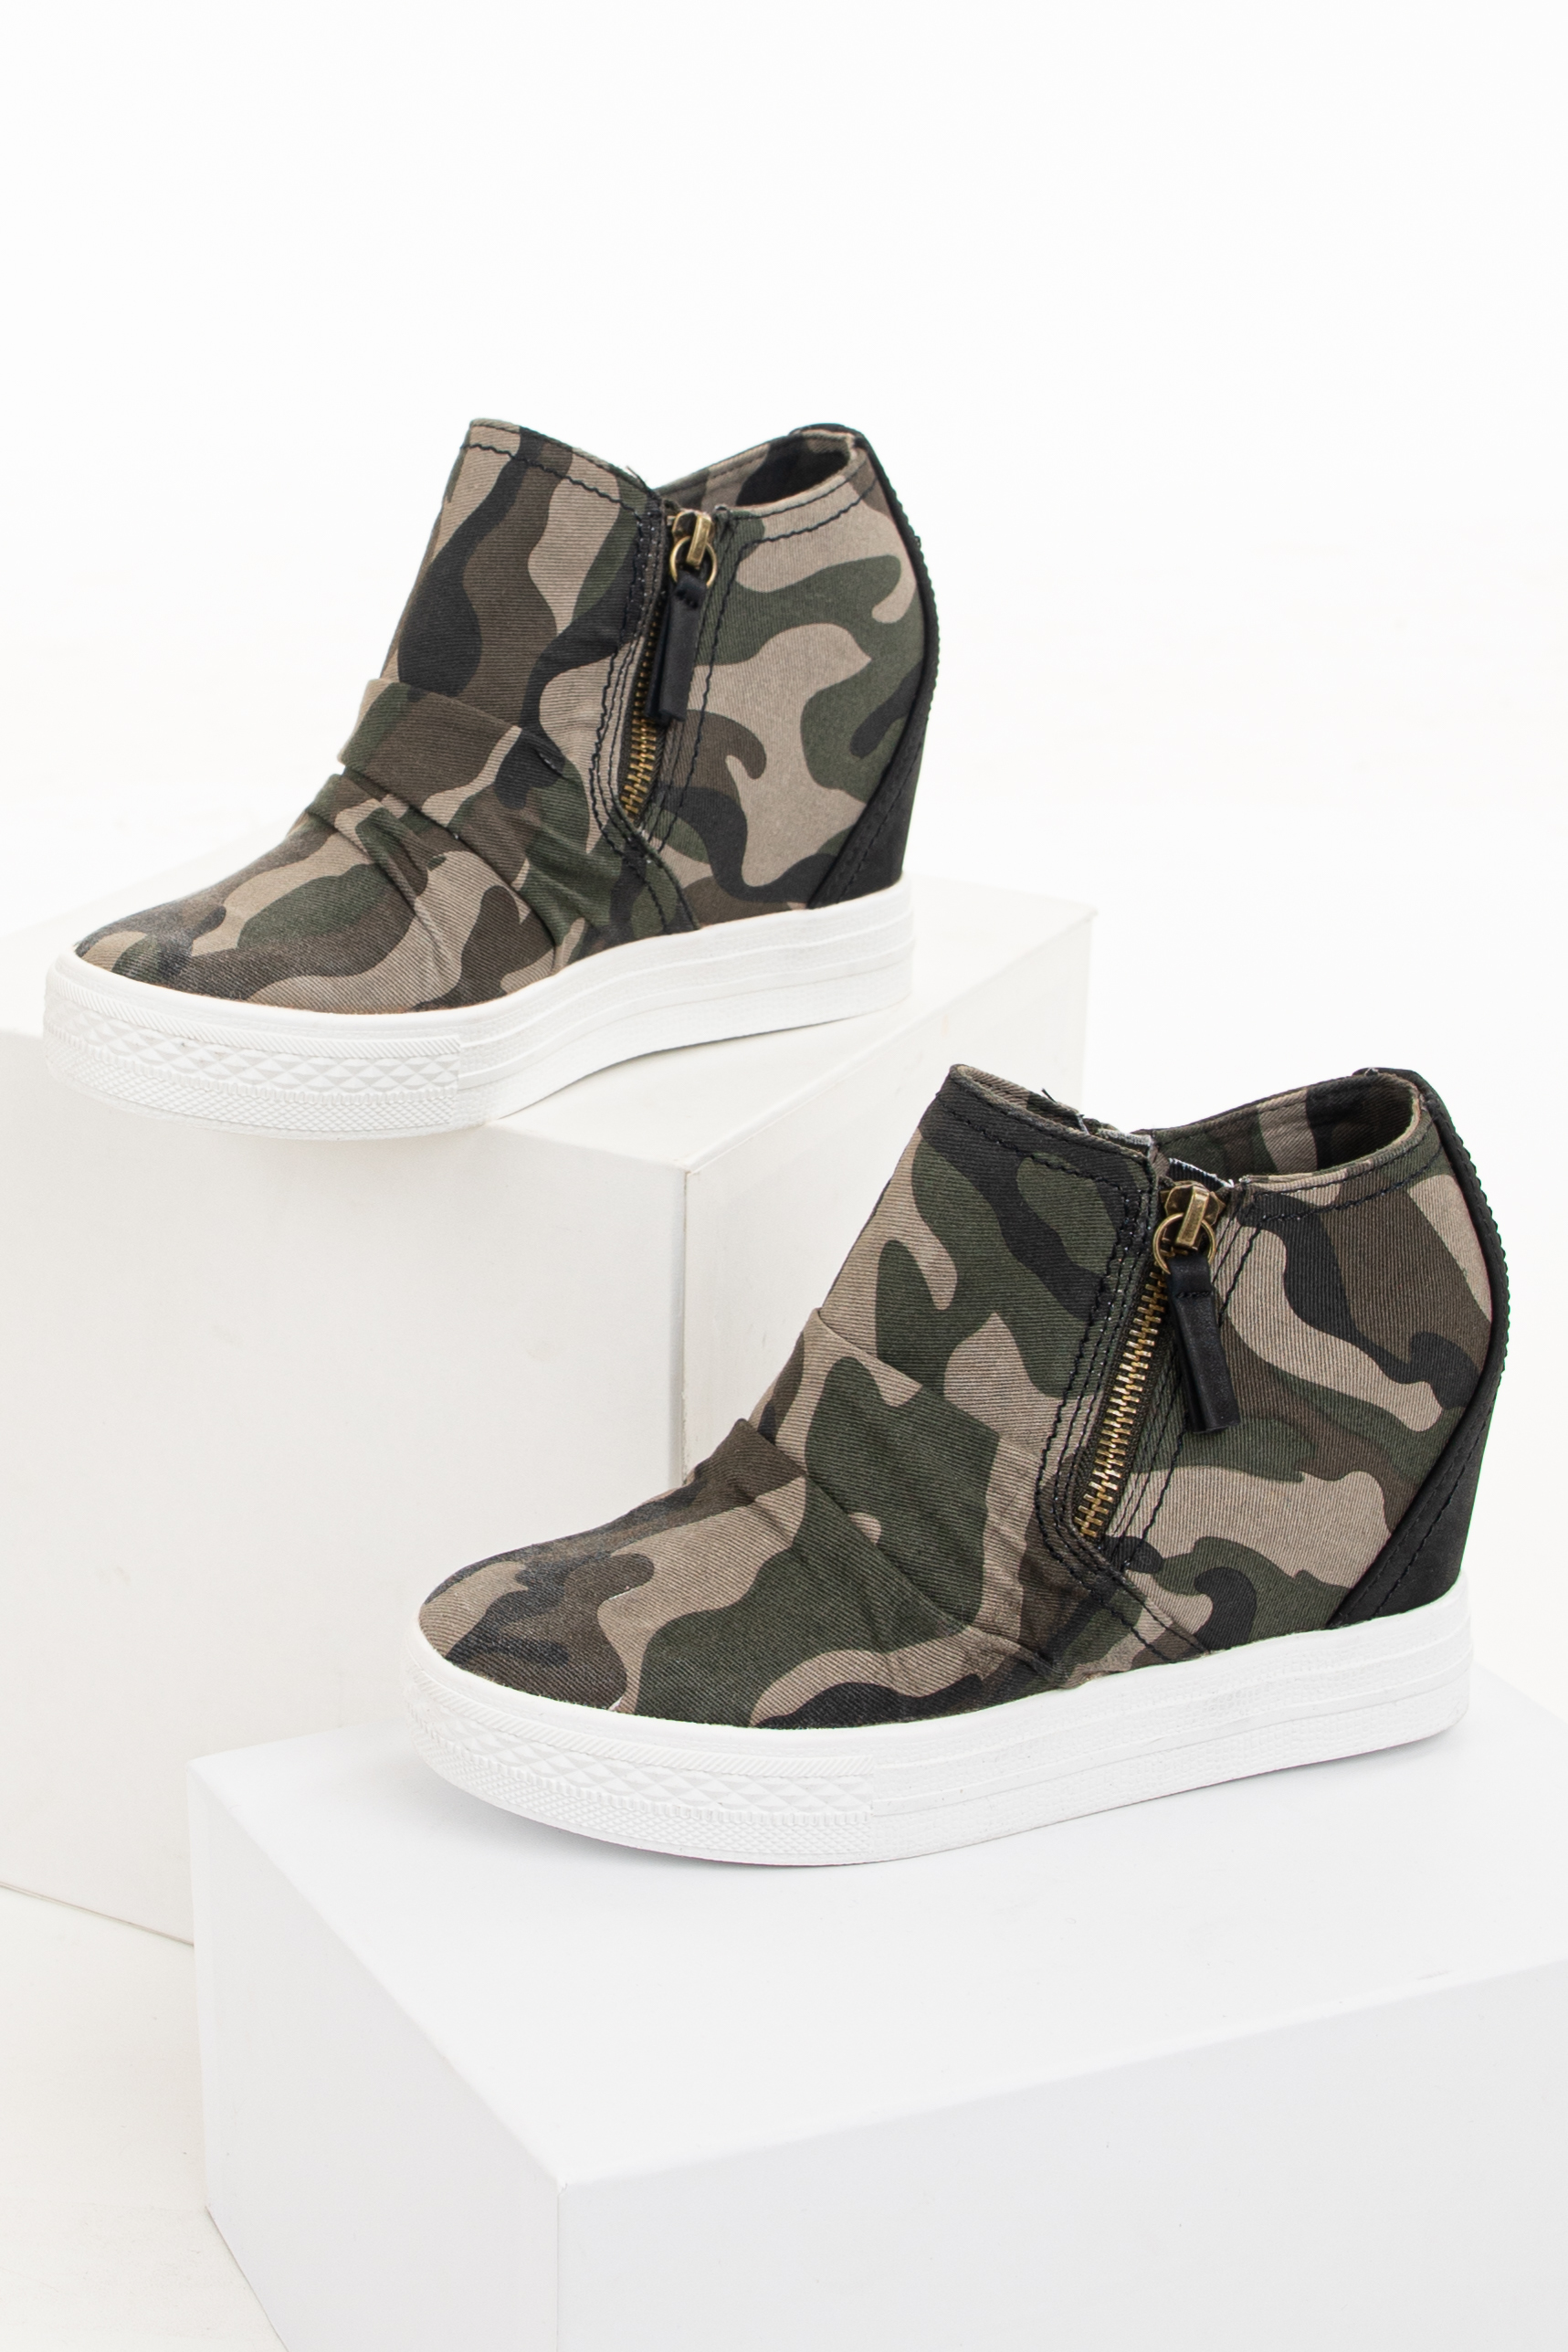 Hunter Green Camo Print Sneaker Wedge with Gathered Detail